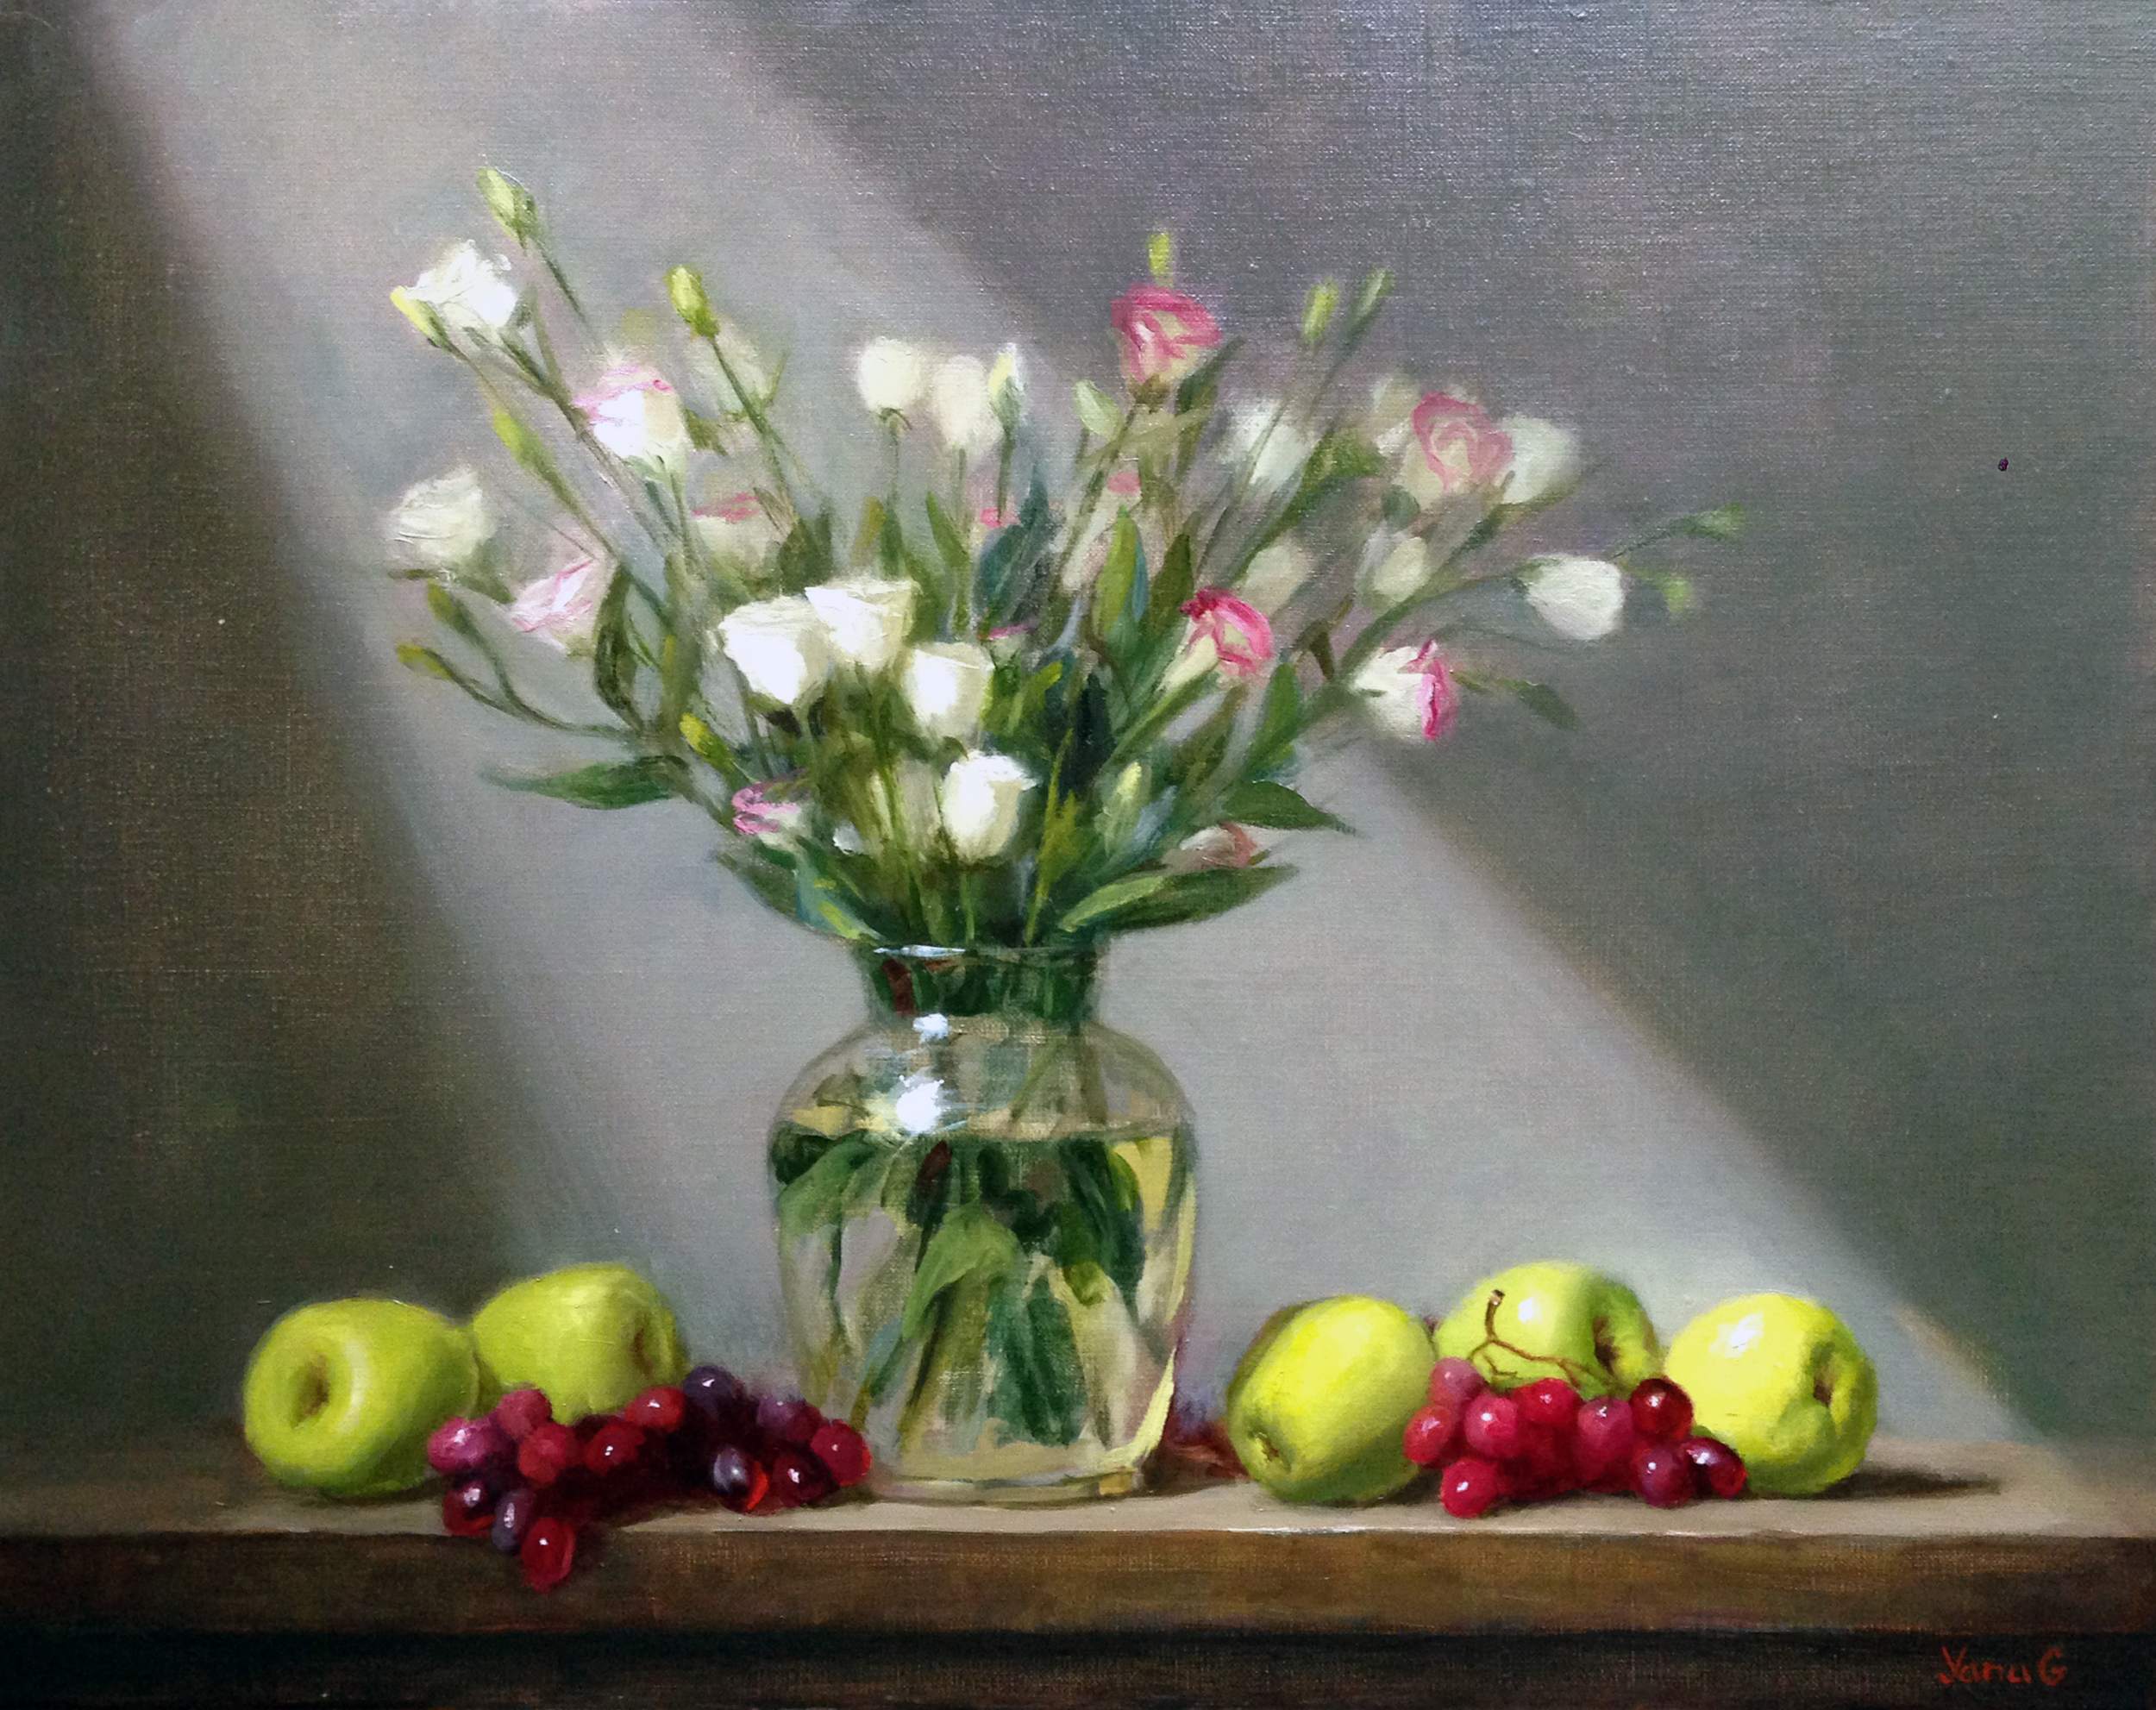 Still life with flowers, apples and grapes 16x20 oil on linen